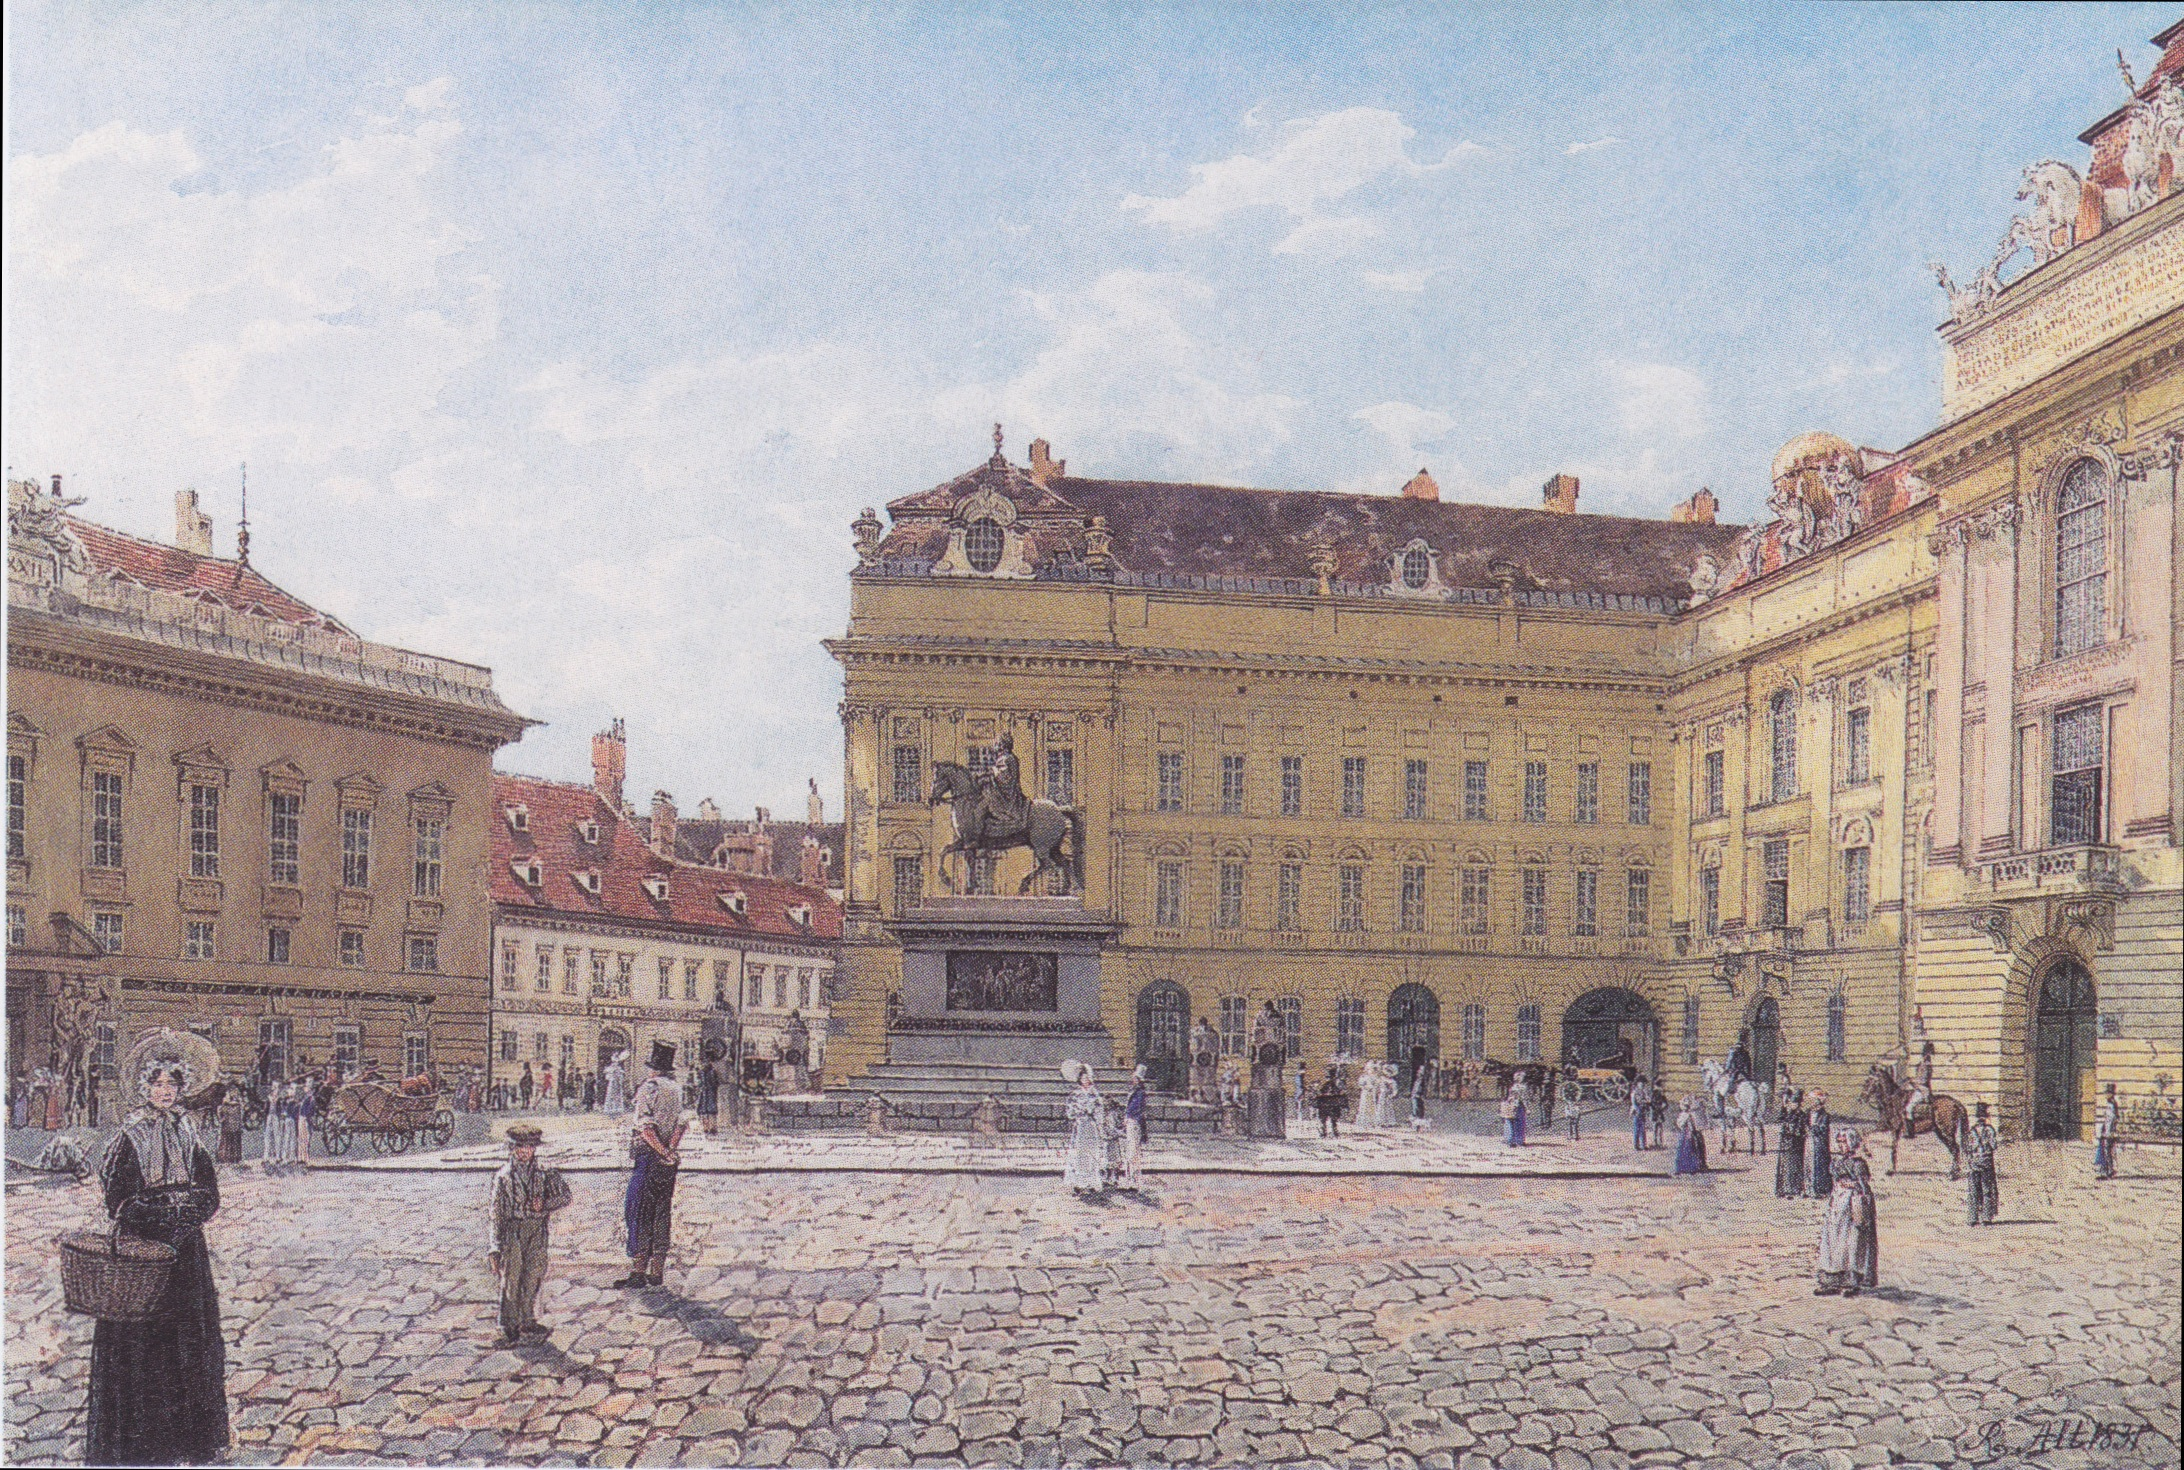 The Josef square in Vienna, 1831